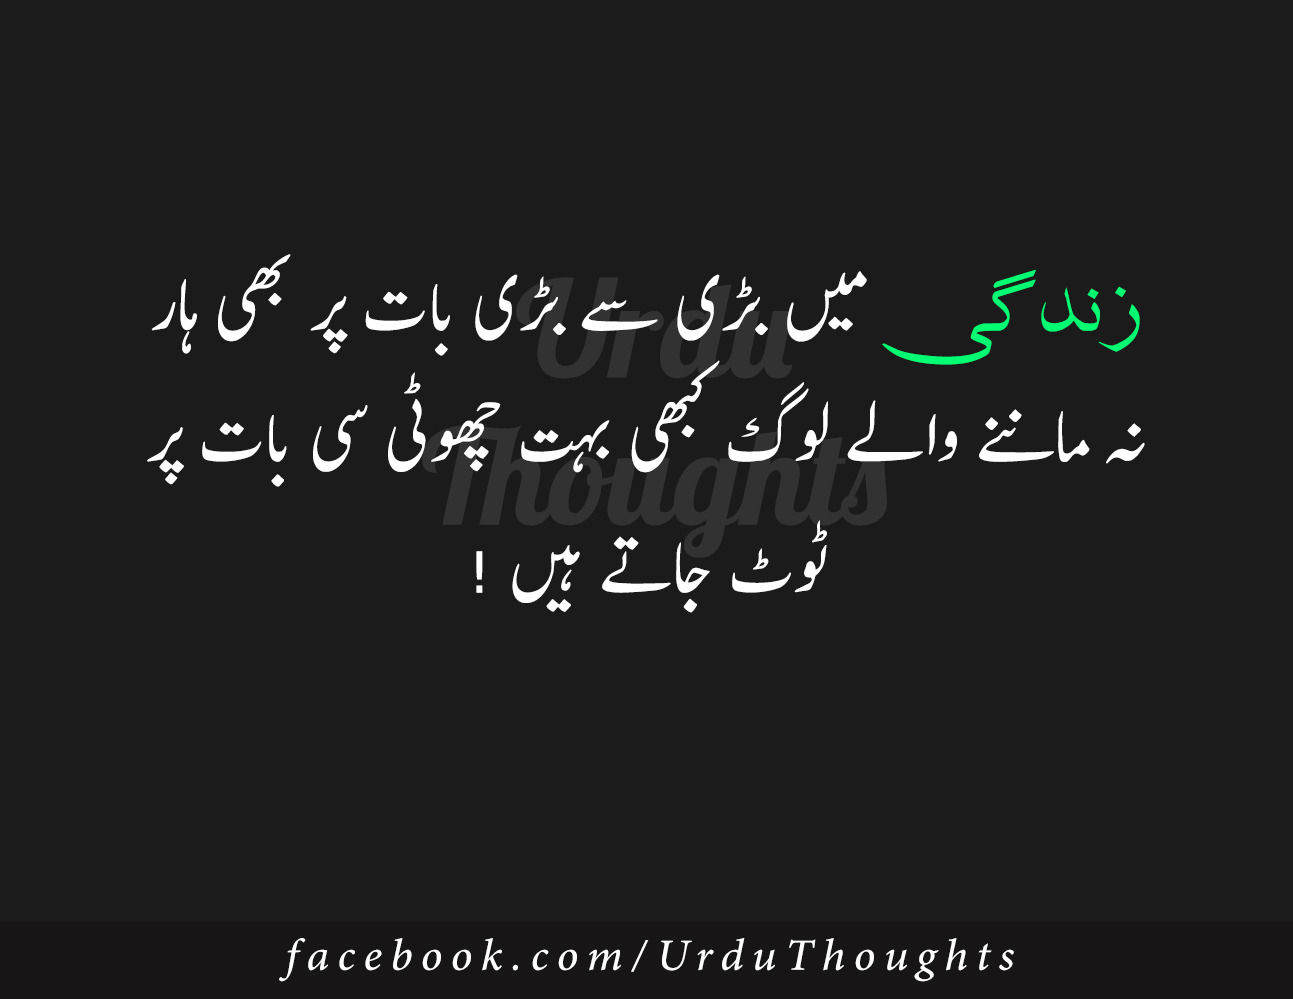 9+ Beautiful Quotes On Zindagi in Urdu Images - Urdu Thoughts